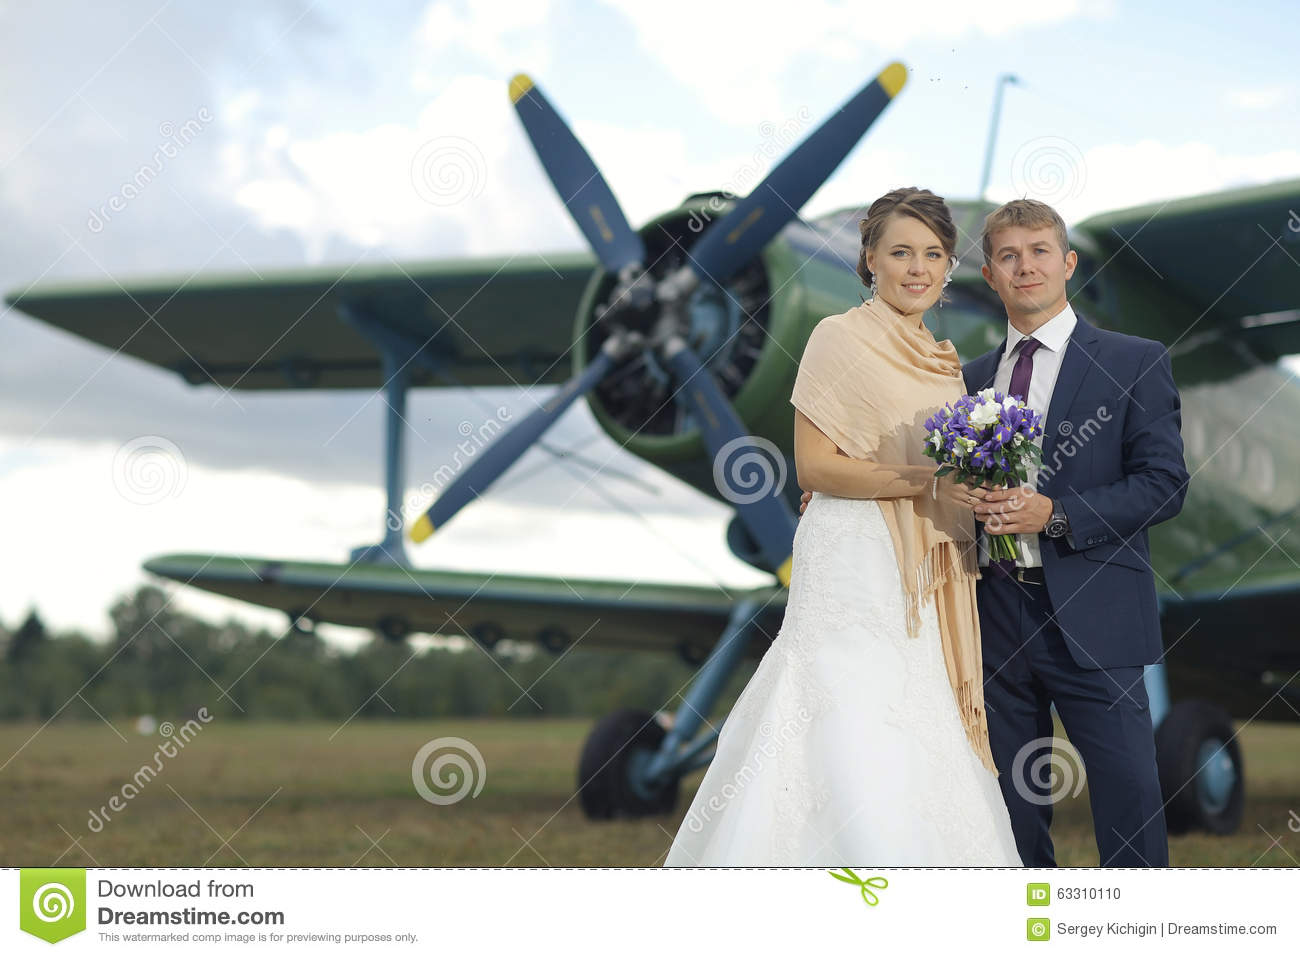 Wedding couple near vintage aircraft